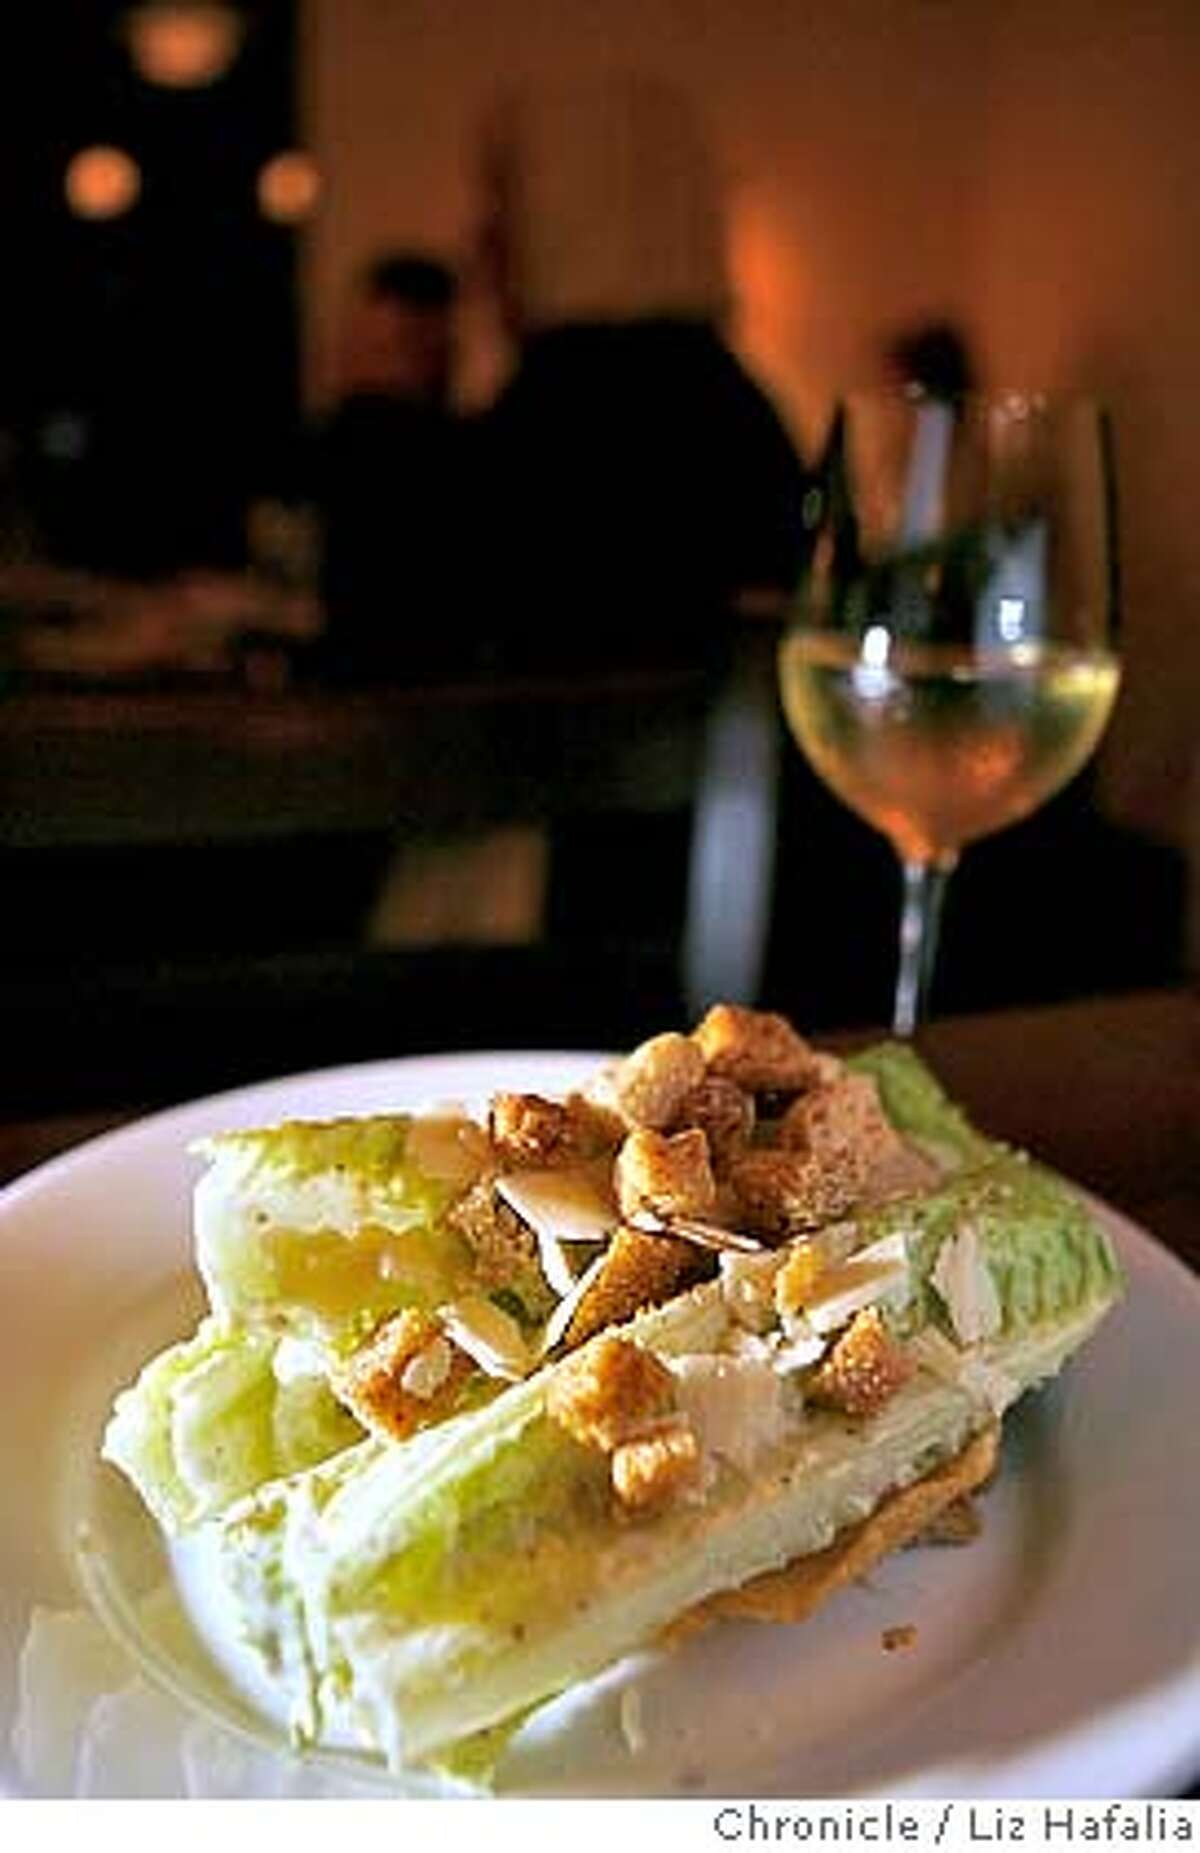 D.27GIGI_066_LH.jpg Caesar salad with garlic croutons and parmesan crisp at Gigi, a new restaurant in Lafayette done by Jeff Amber, a well known Bay Area chef. Liz Hafalia/The Chronicle/Lafayette/1/4/08 **Jeff Amber cq Ran on: 01-27-2008 Prudy Noon, Kumi Yamaguchi and Erin Dowd anticipate their meals at Gigi, which is run by Chronicle Rising Star chef Jeffrey Amber.